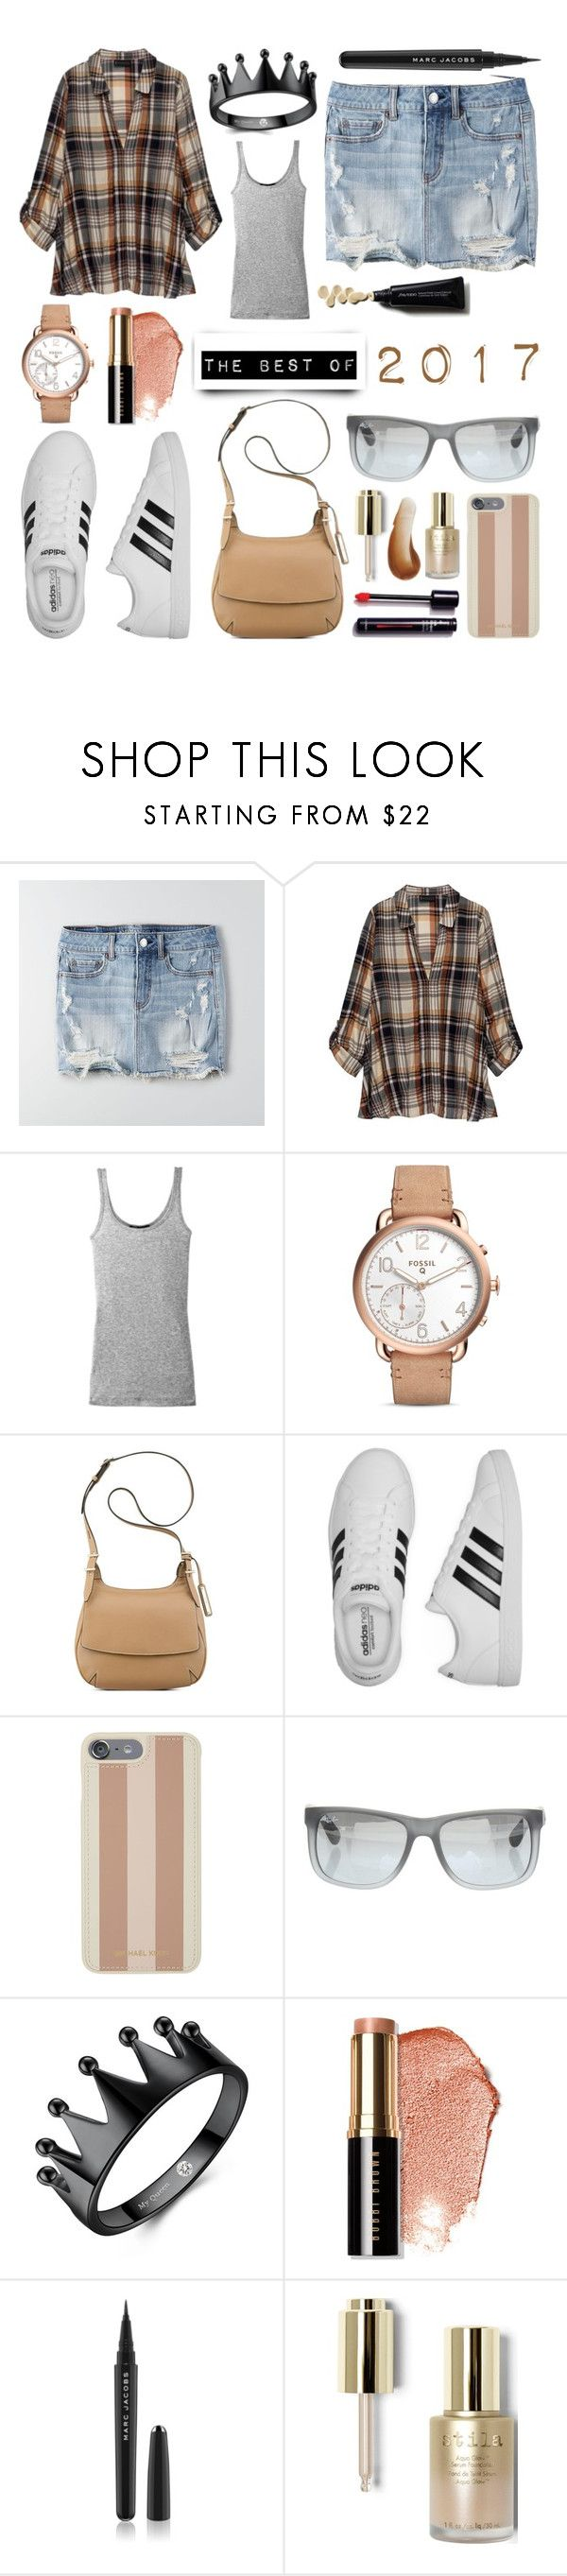 """at the concert"" by beiacas ❤ liked on Polyvore featuring American Eagle Outfitters, Bobeau, Vince, FOSSIL, Nine West, adidas, Michael Kors, Ray-Ban, Bobbi Brown Cosmetics and Marc Jacobs"